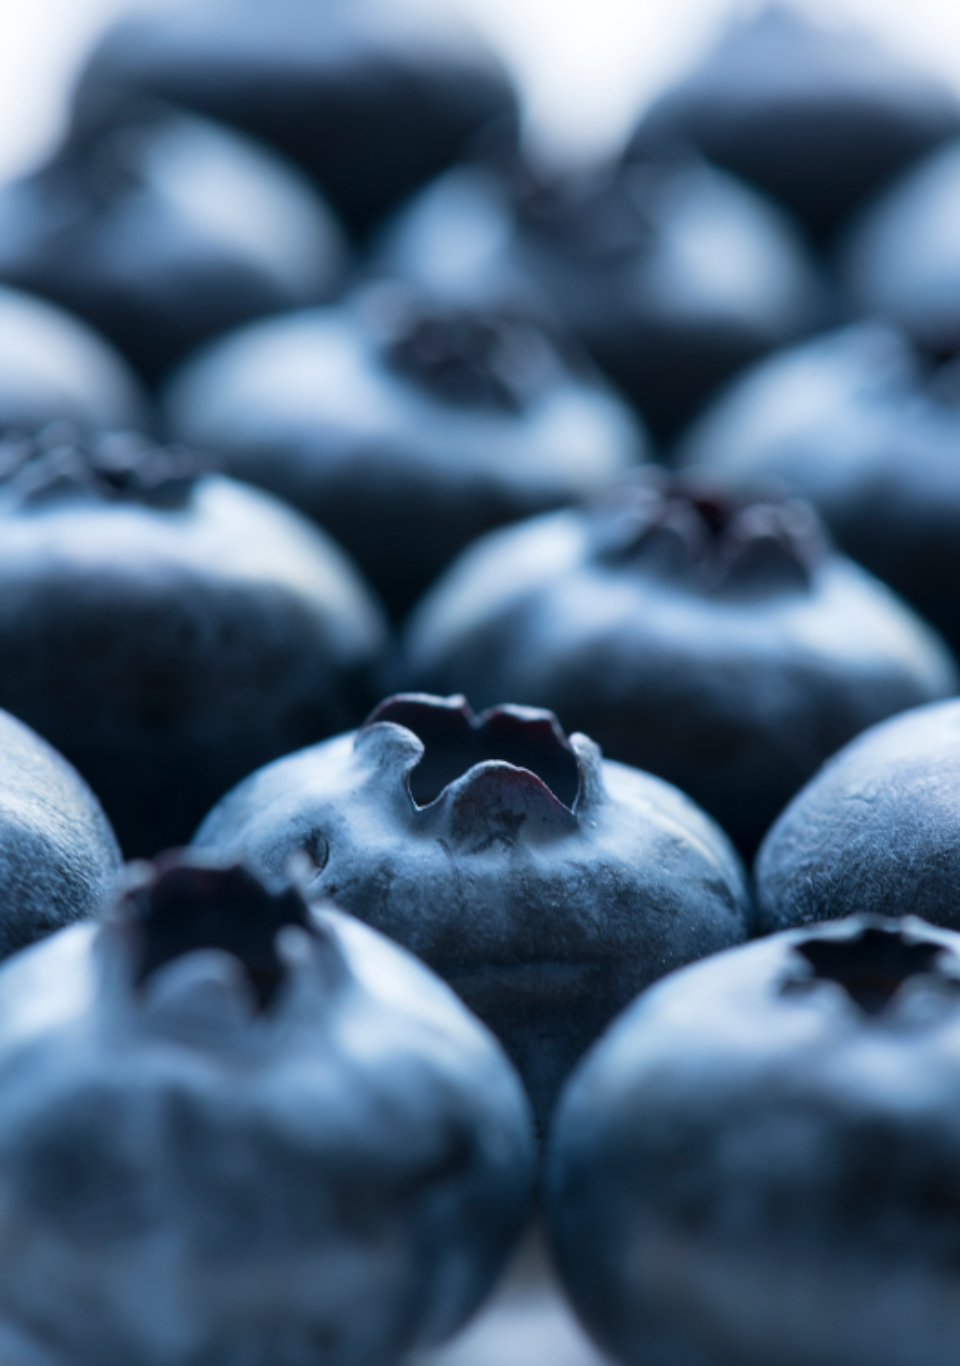 background berry blue blueberry closeup delicious dessert detox diet energy food fresh freshness fruit healthy ingredient juicy macro natural nature nutrition nutritious organic pattern raw refreshment ripe season